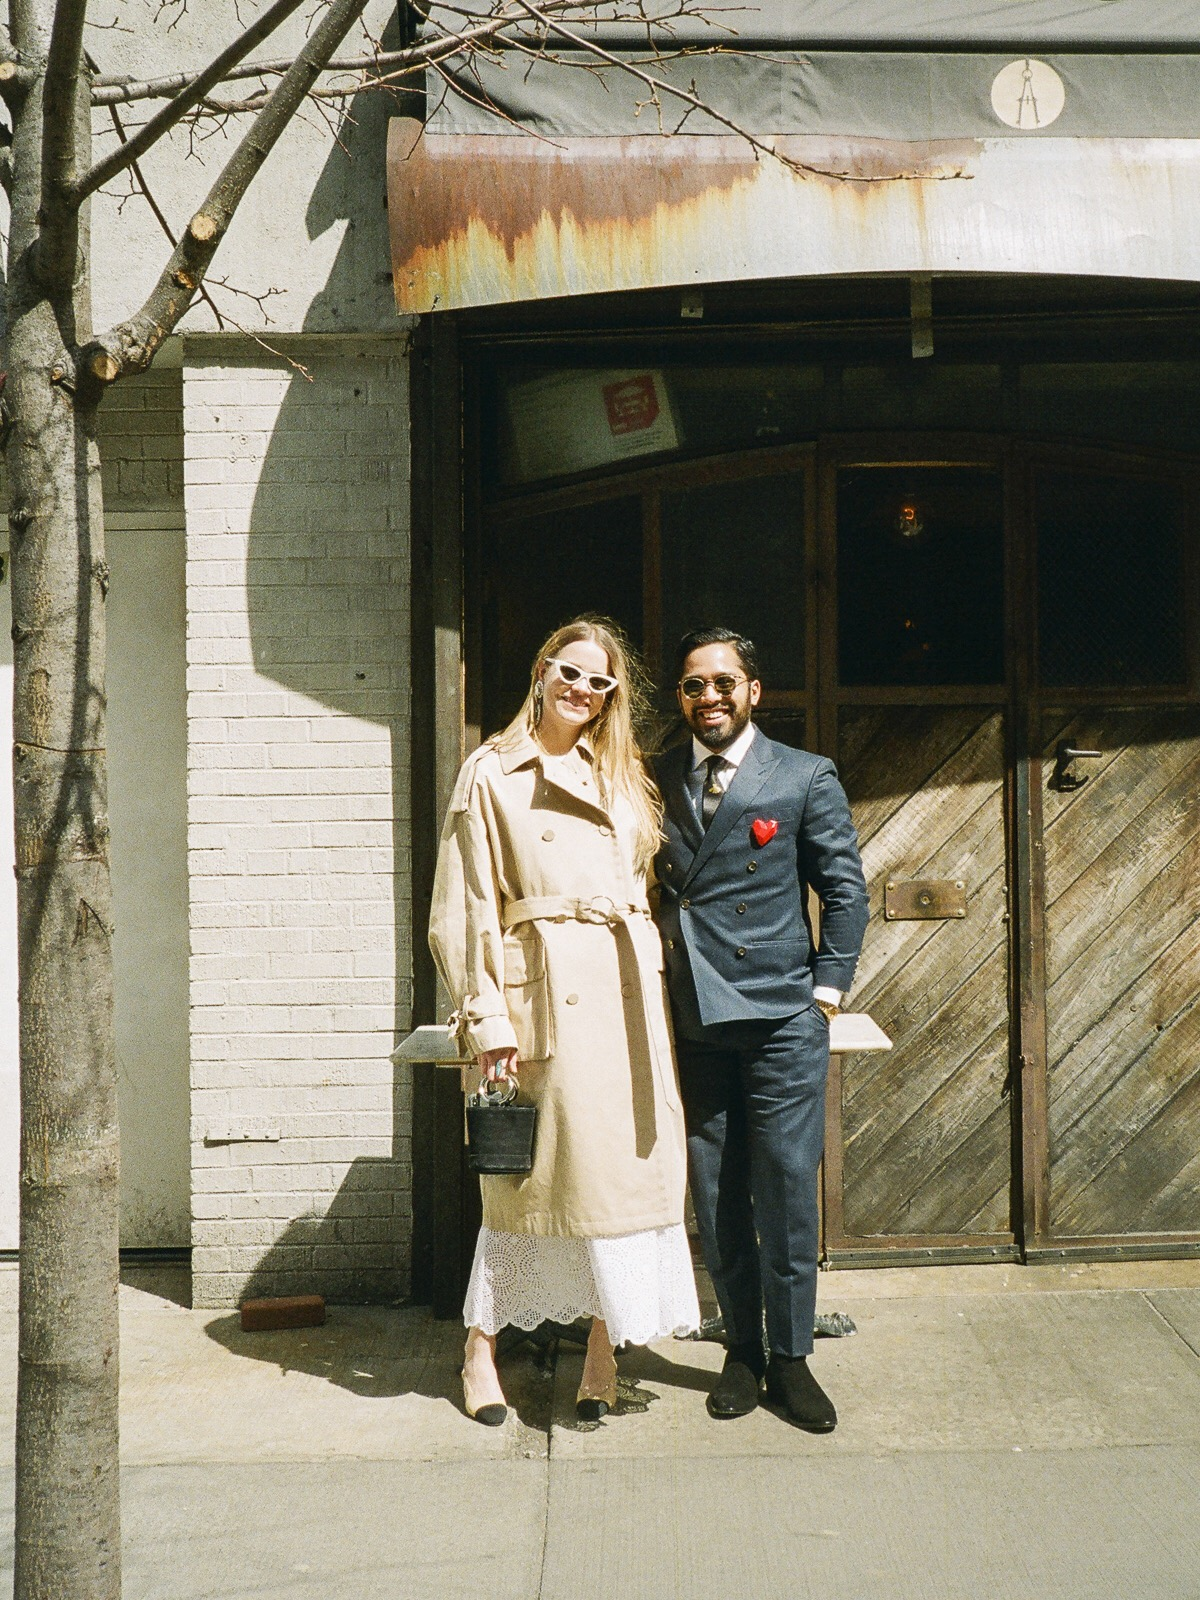 Trench,  & Other Stories . Dress,  Allison Fry . Handbag,  Simon Miller.  Shoes,  Chanel . Sunglasses,  Le Specs by Adam Selman . Earrings,  Alessandra Rich .  Bibhu wears    Suit by  J.Crew . Tie by  Gucci . Sunglasses,  Gucci . Boots,  Saint Laurent .